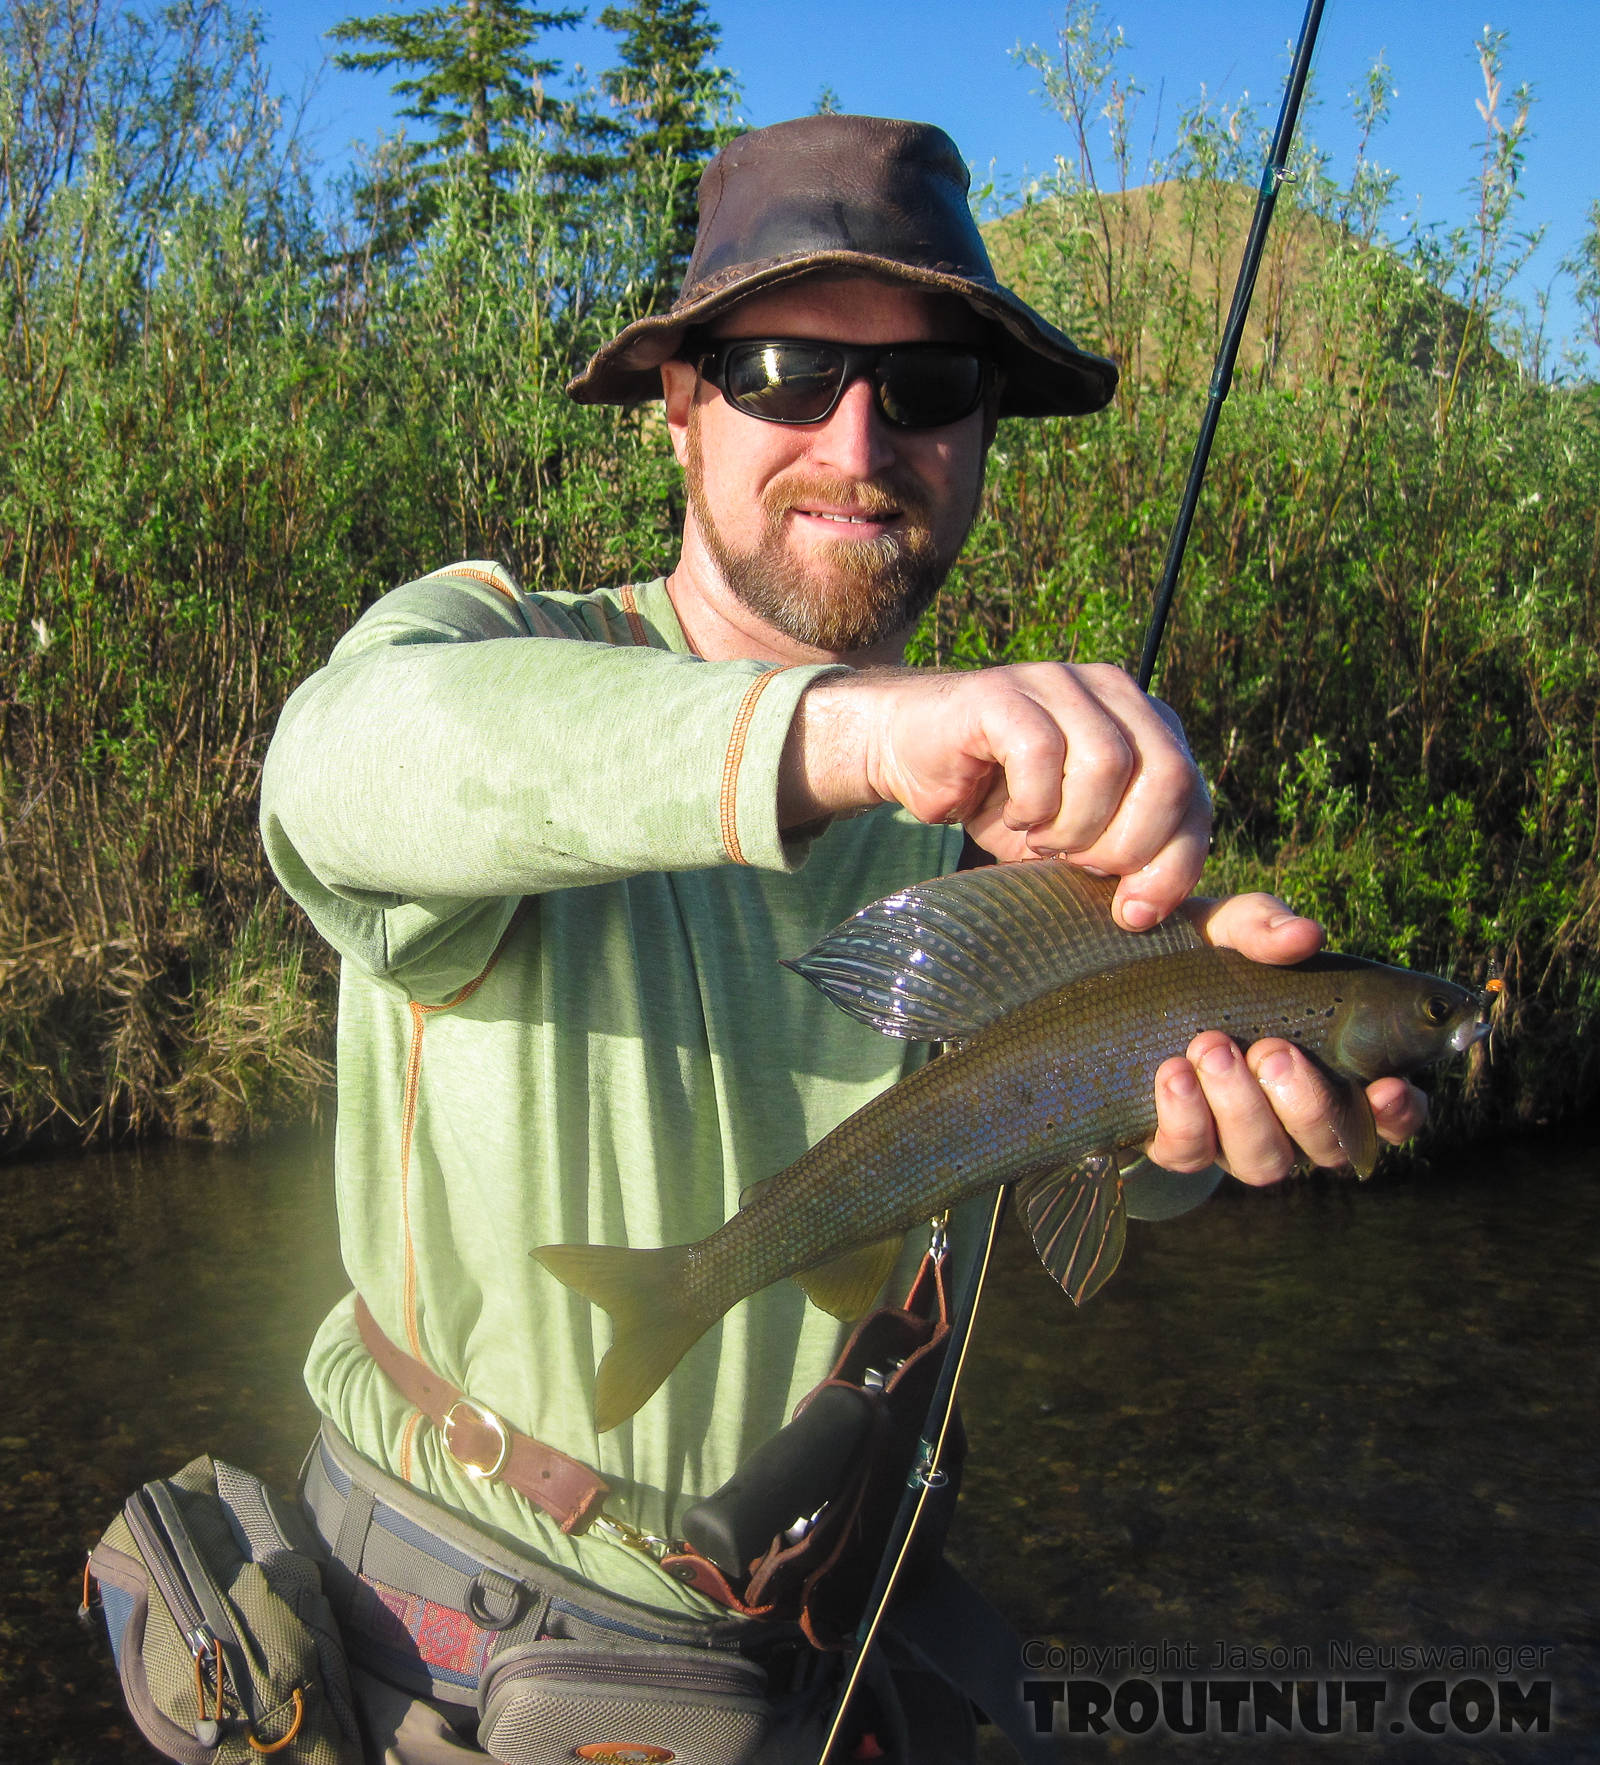 A very nice grayling for this small stream. From Nome Creek in Alaska.